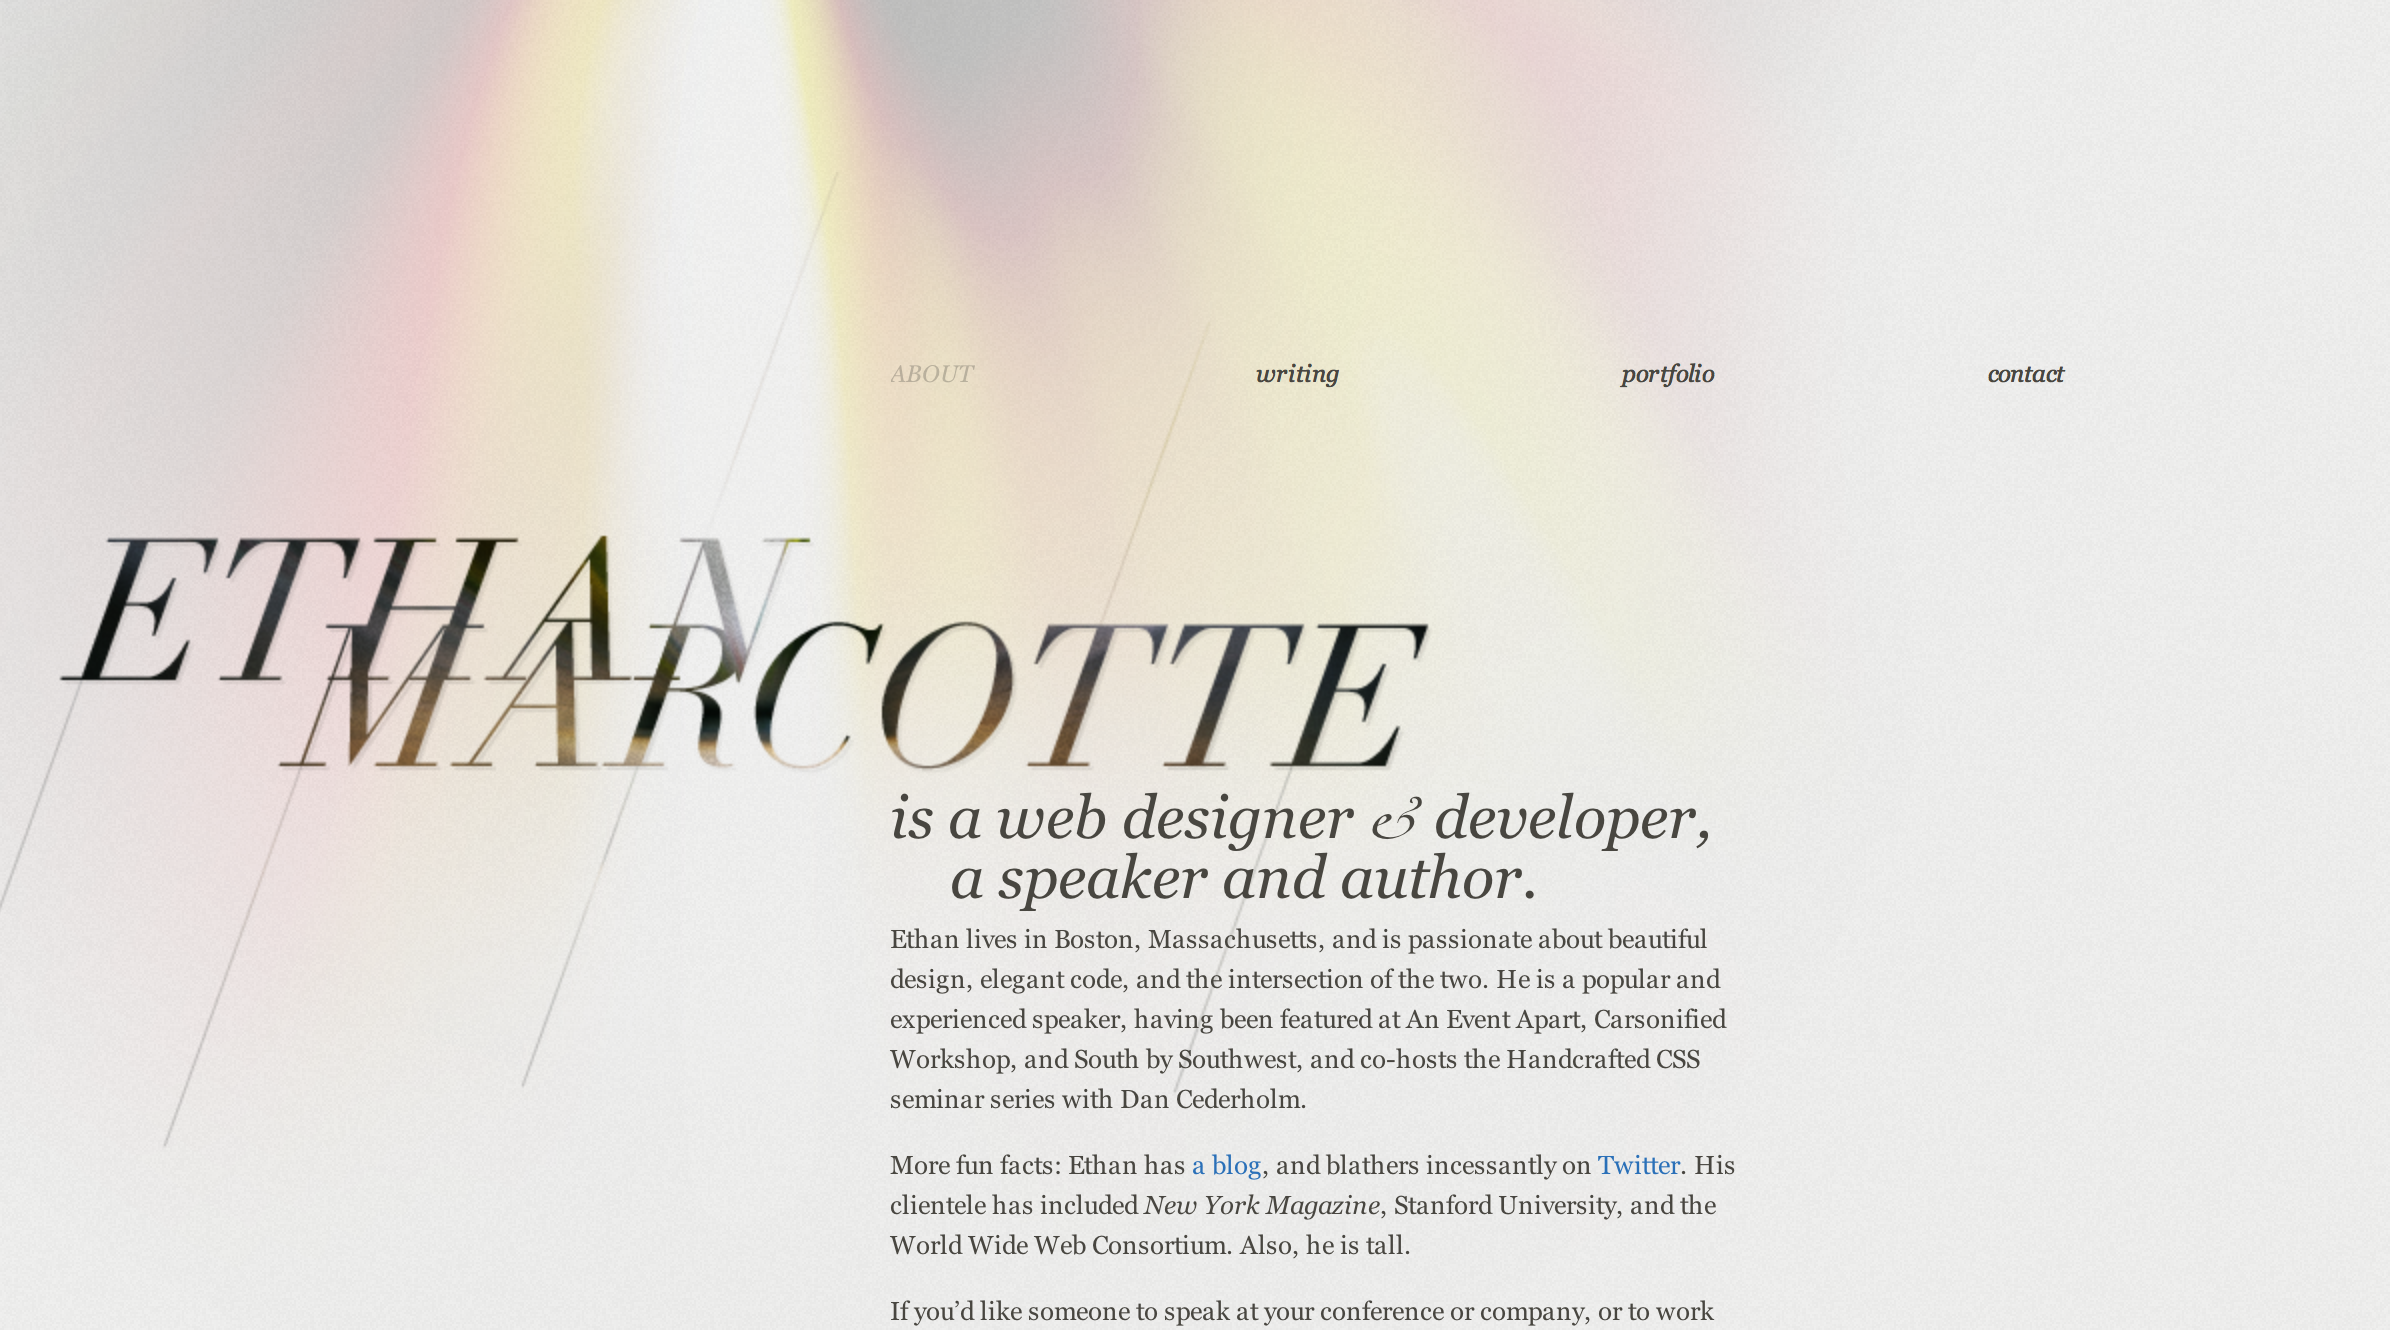 Ethan Marcotte website via desktop browser